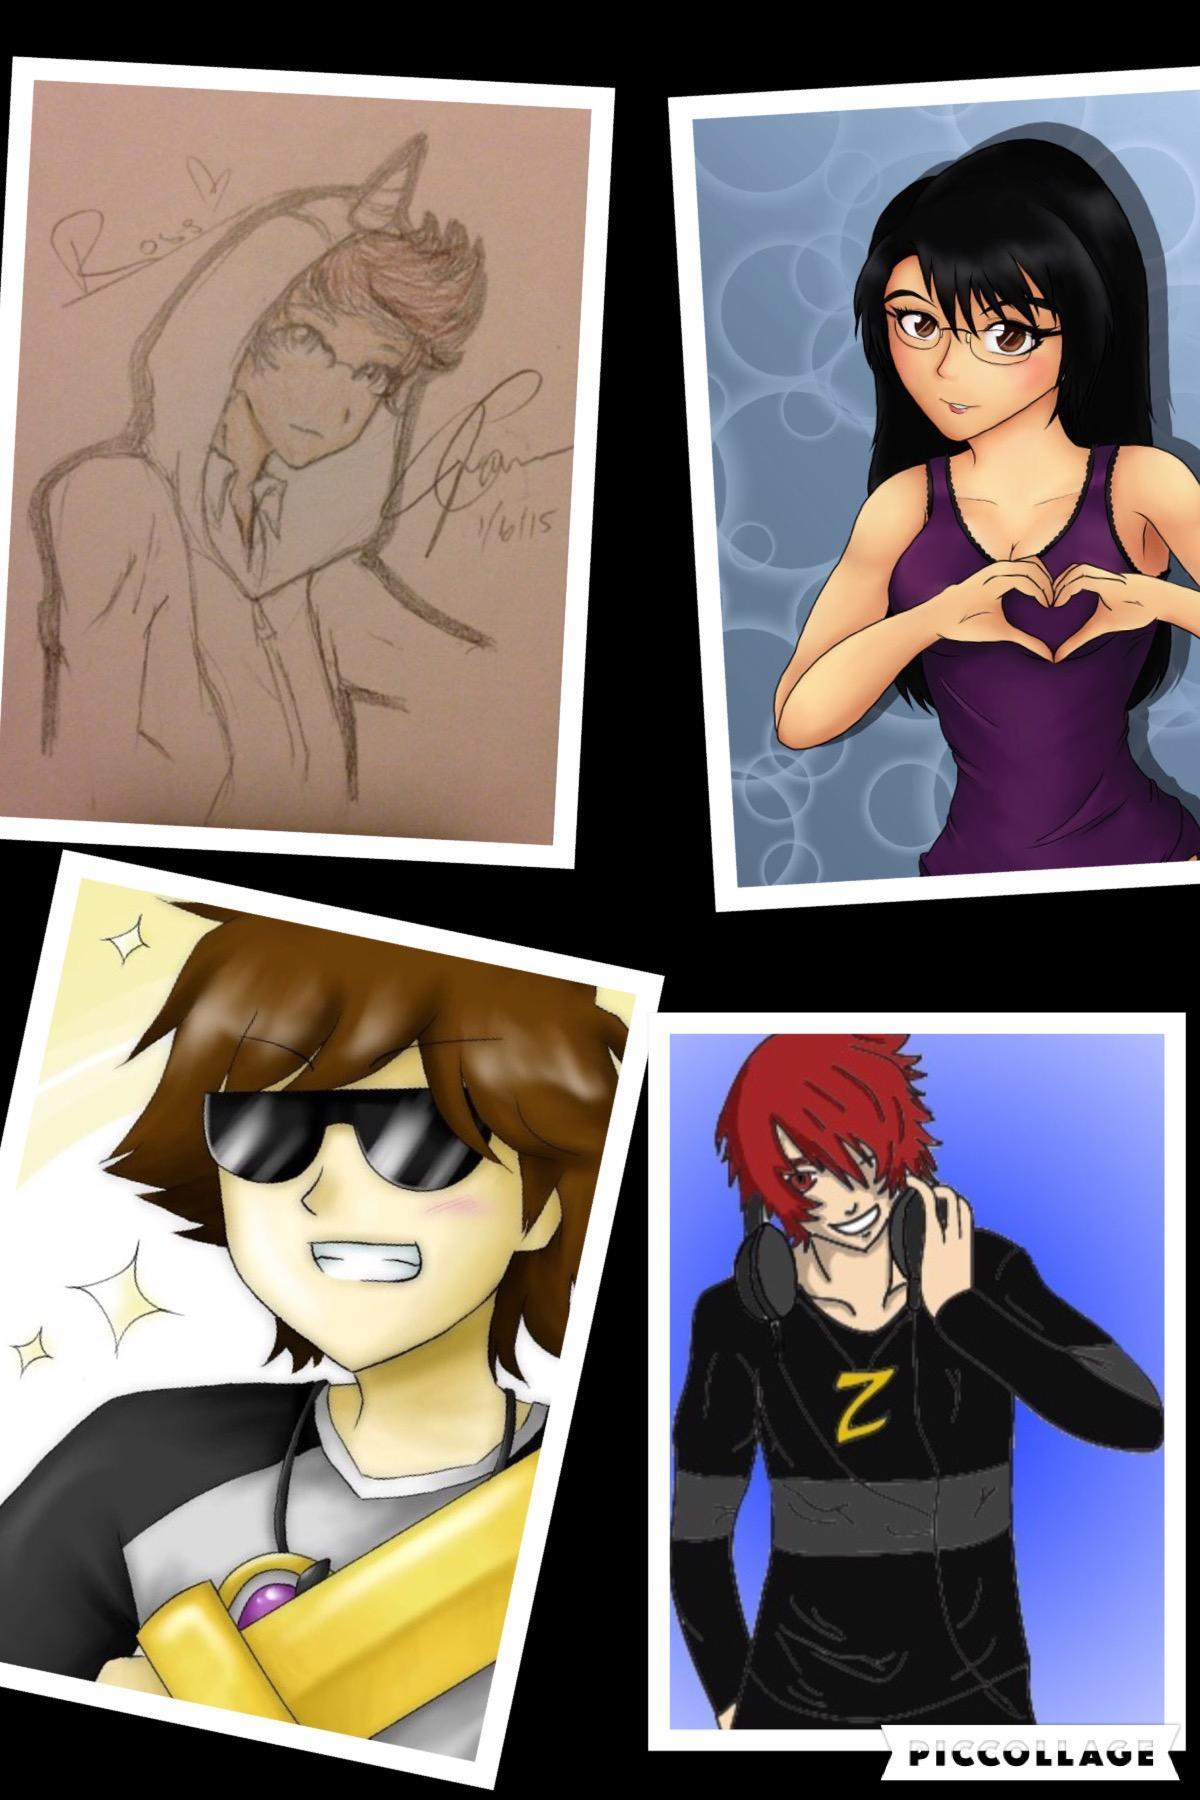 Sky, Aphmau, Ross, or Max